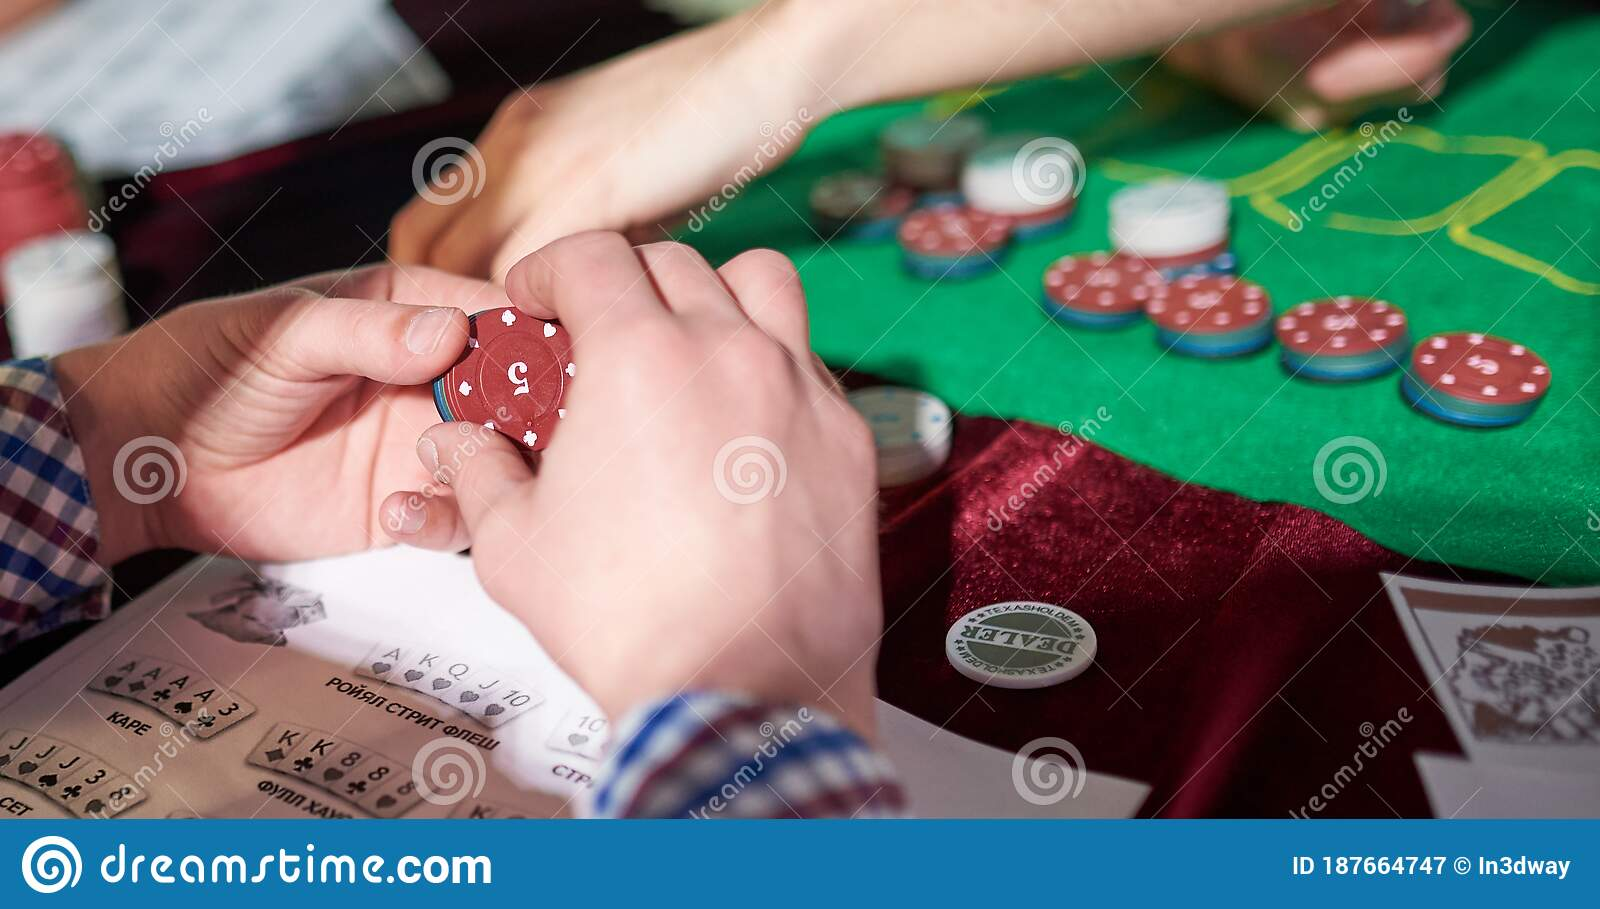 Man Prepare Place Bet With Poker Chips On Green Table Stock Image Image Of Betting Formalwear 187664747